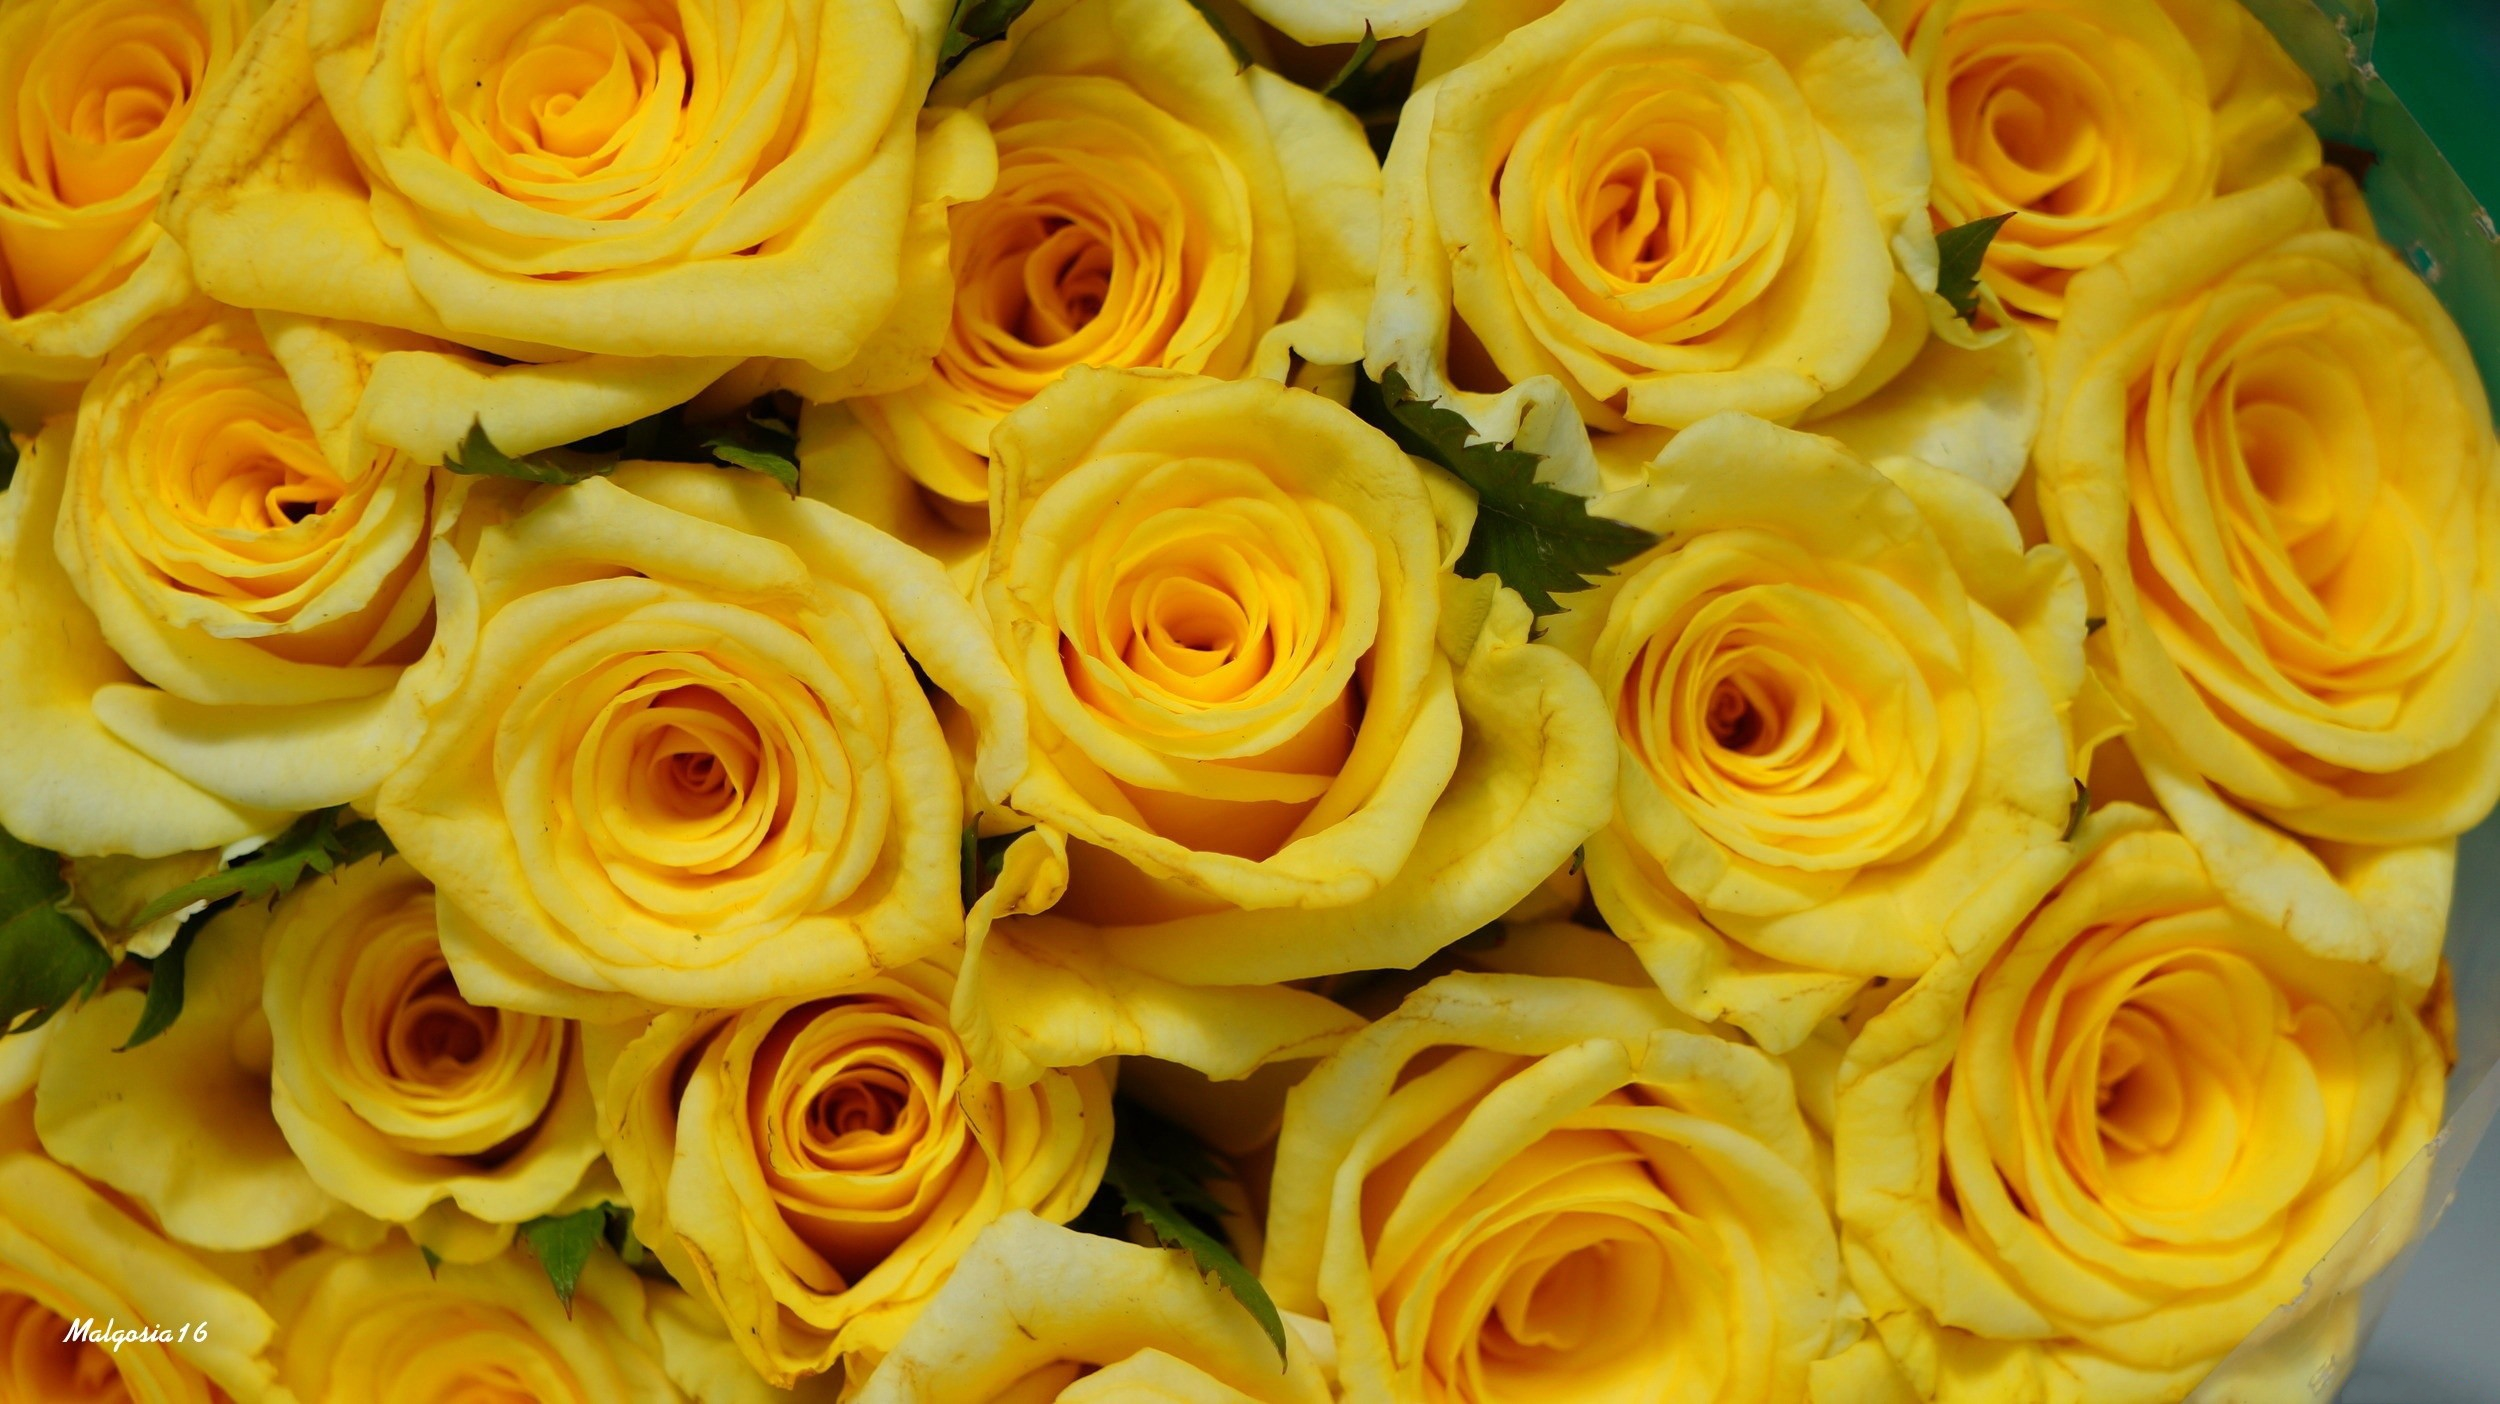 Yellow Roses Full HD Wallpaper and Background Image ...